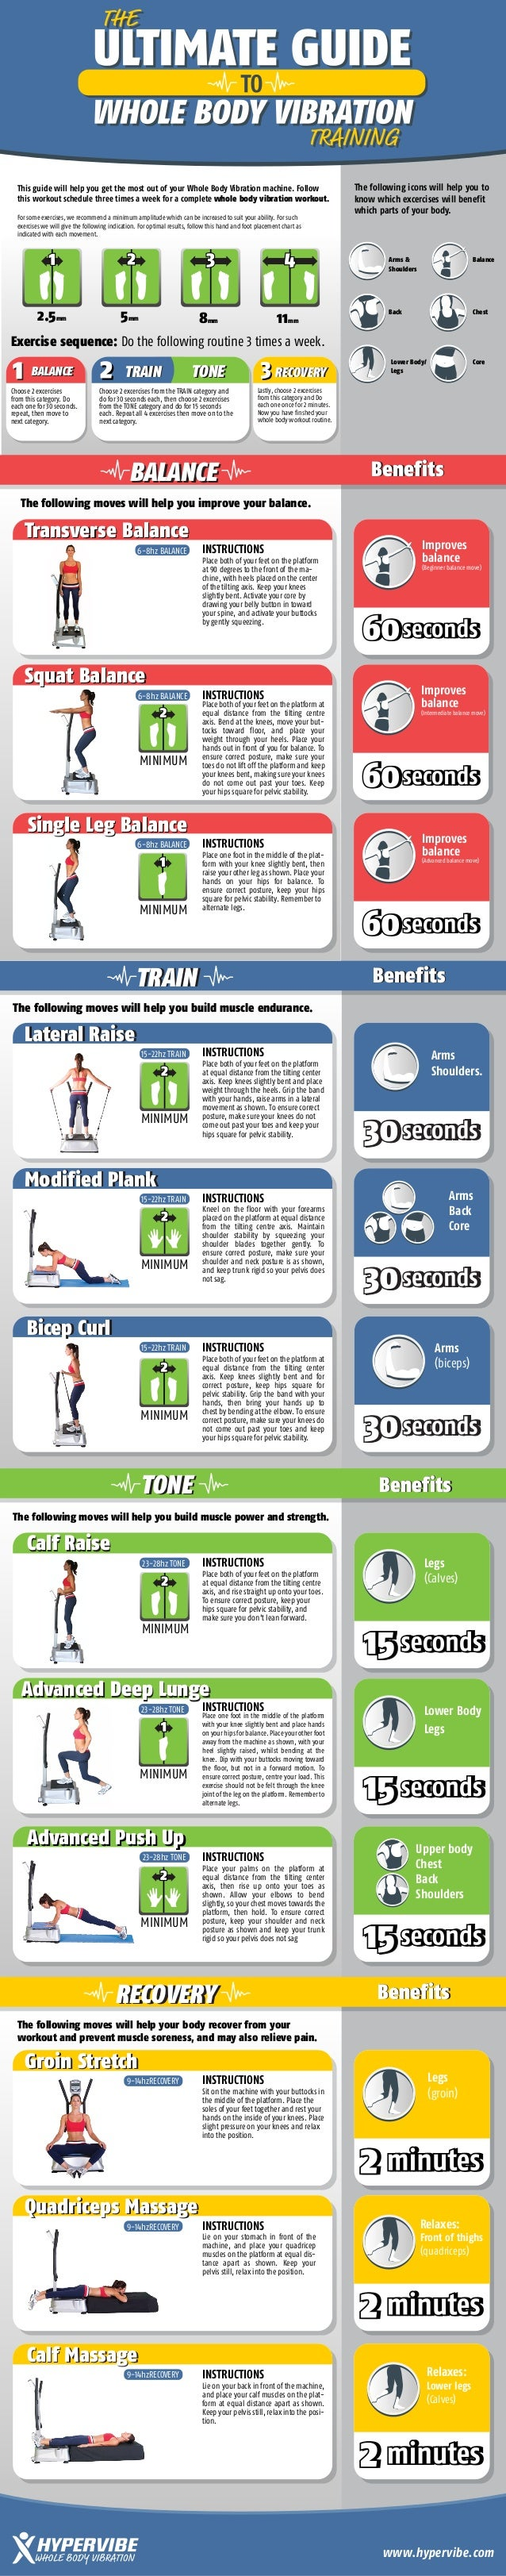 Guide To Whole Body Vibration Workout